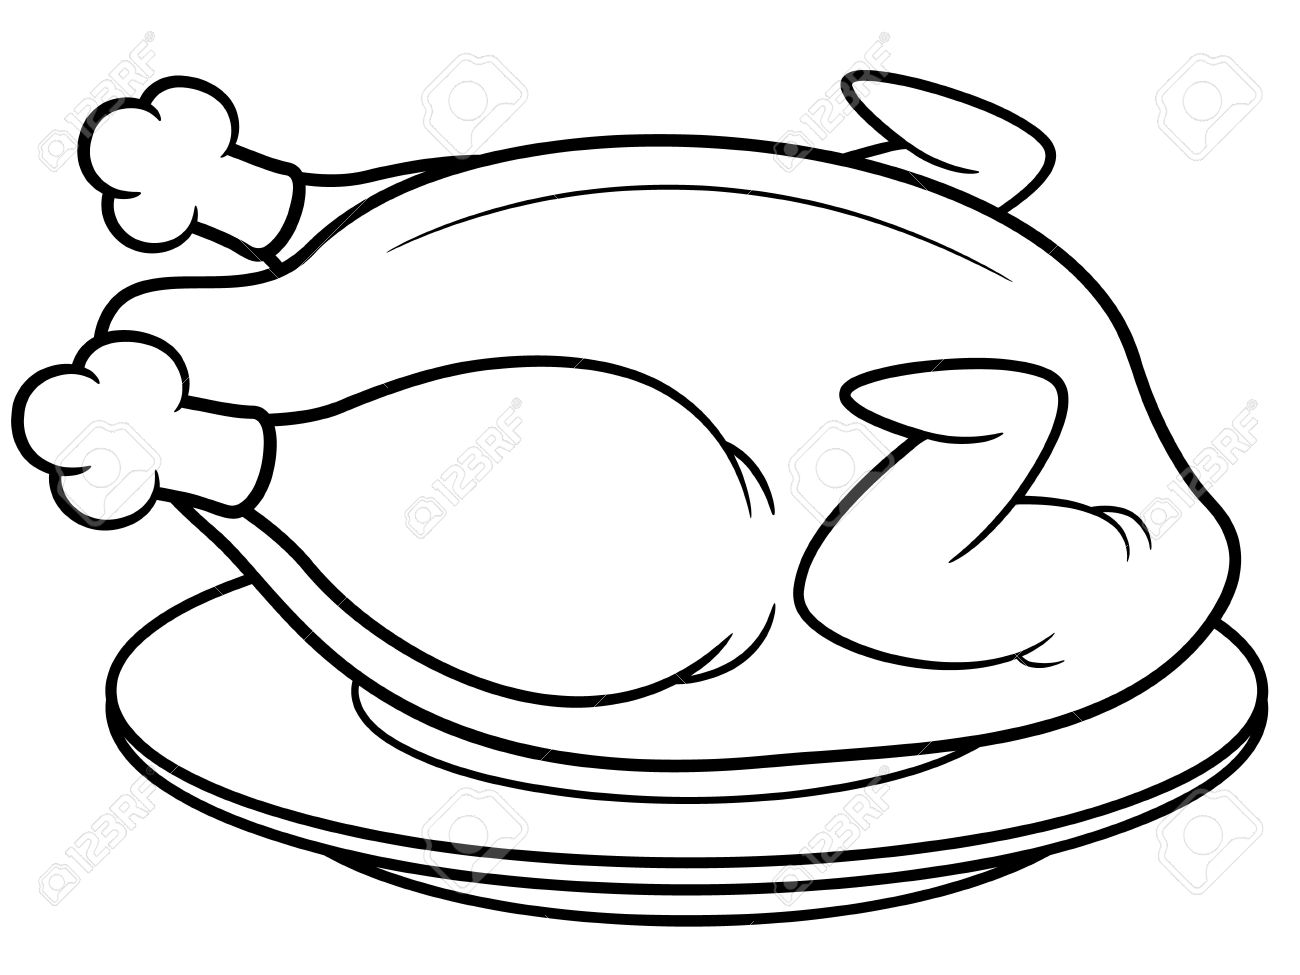 Chicken Meat Drawing of Roast Chicken